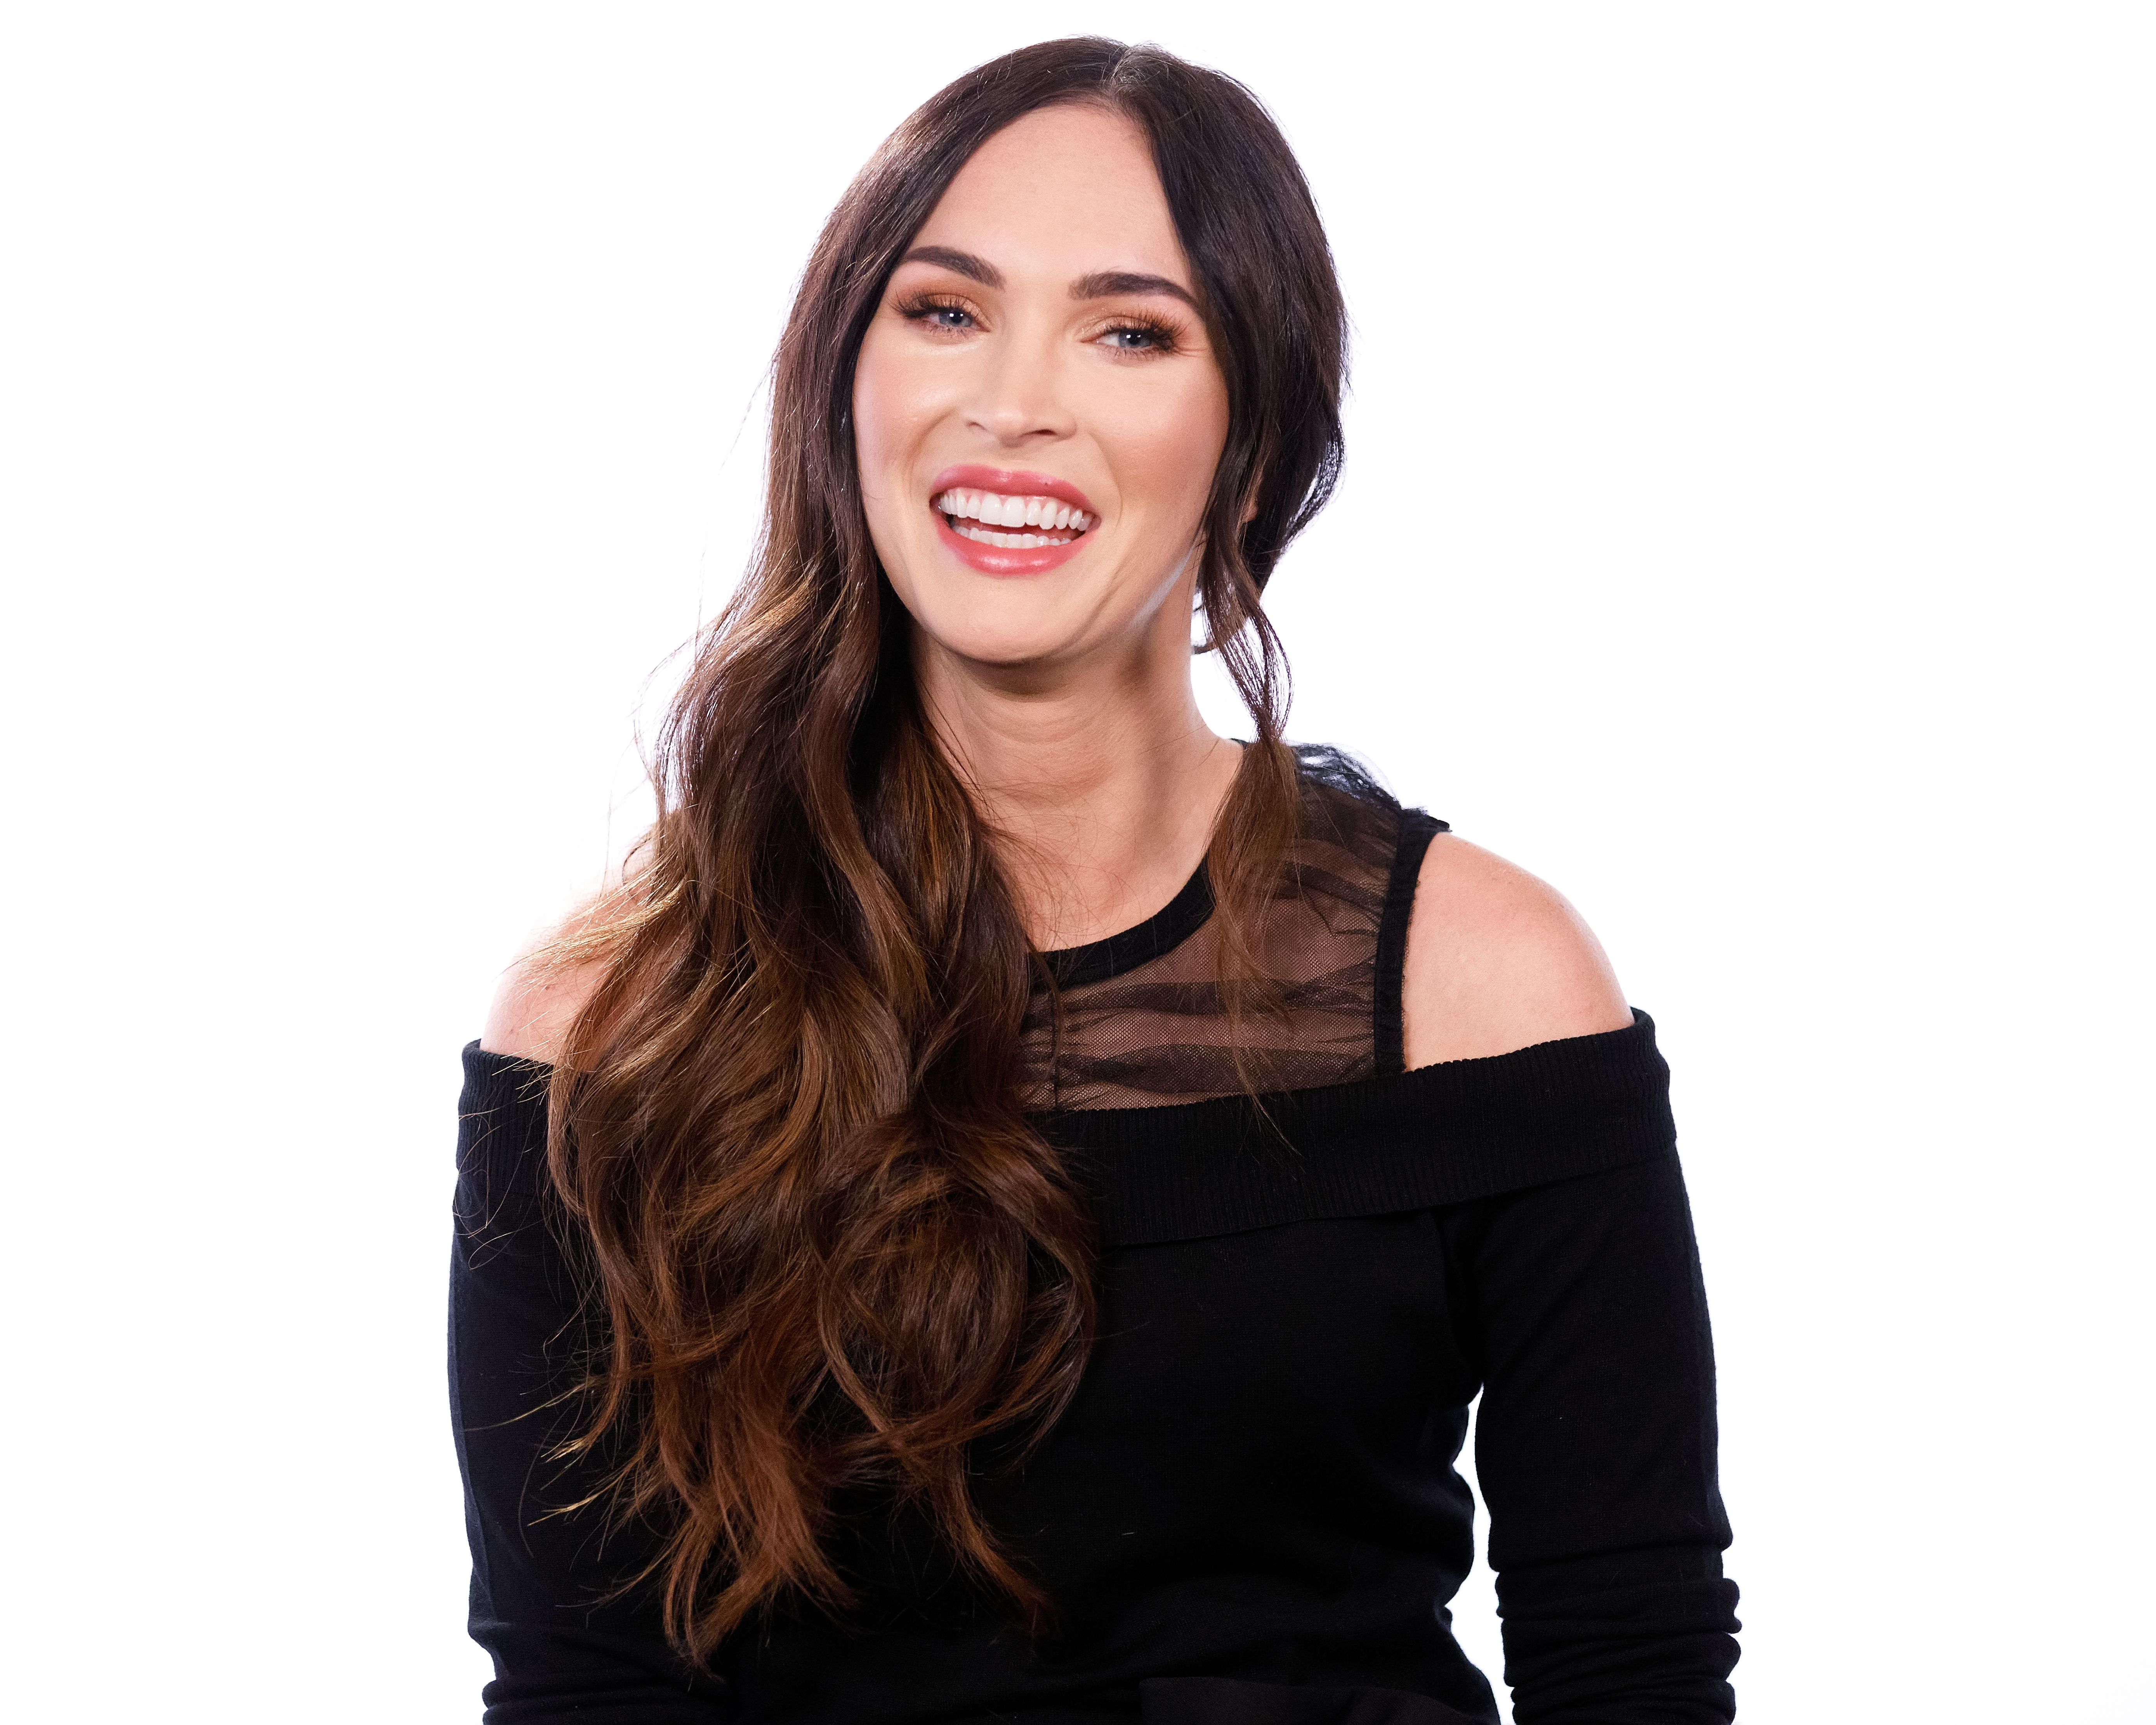 Megan Fox visits 'The IMDb Show' on November 16, 2018 in Studio City, California. (Photo by Rich Polk/Getty Images for IMDb).